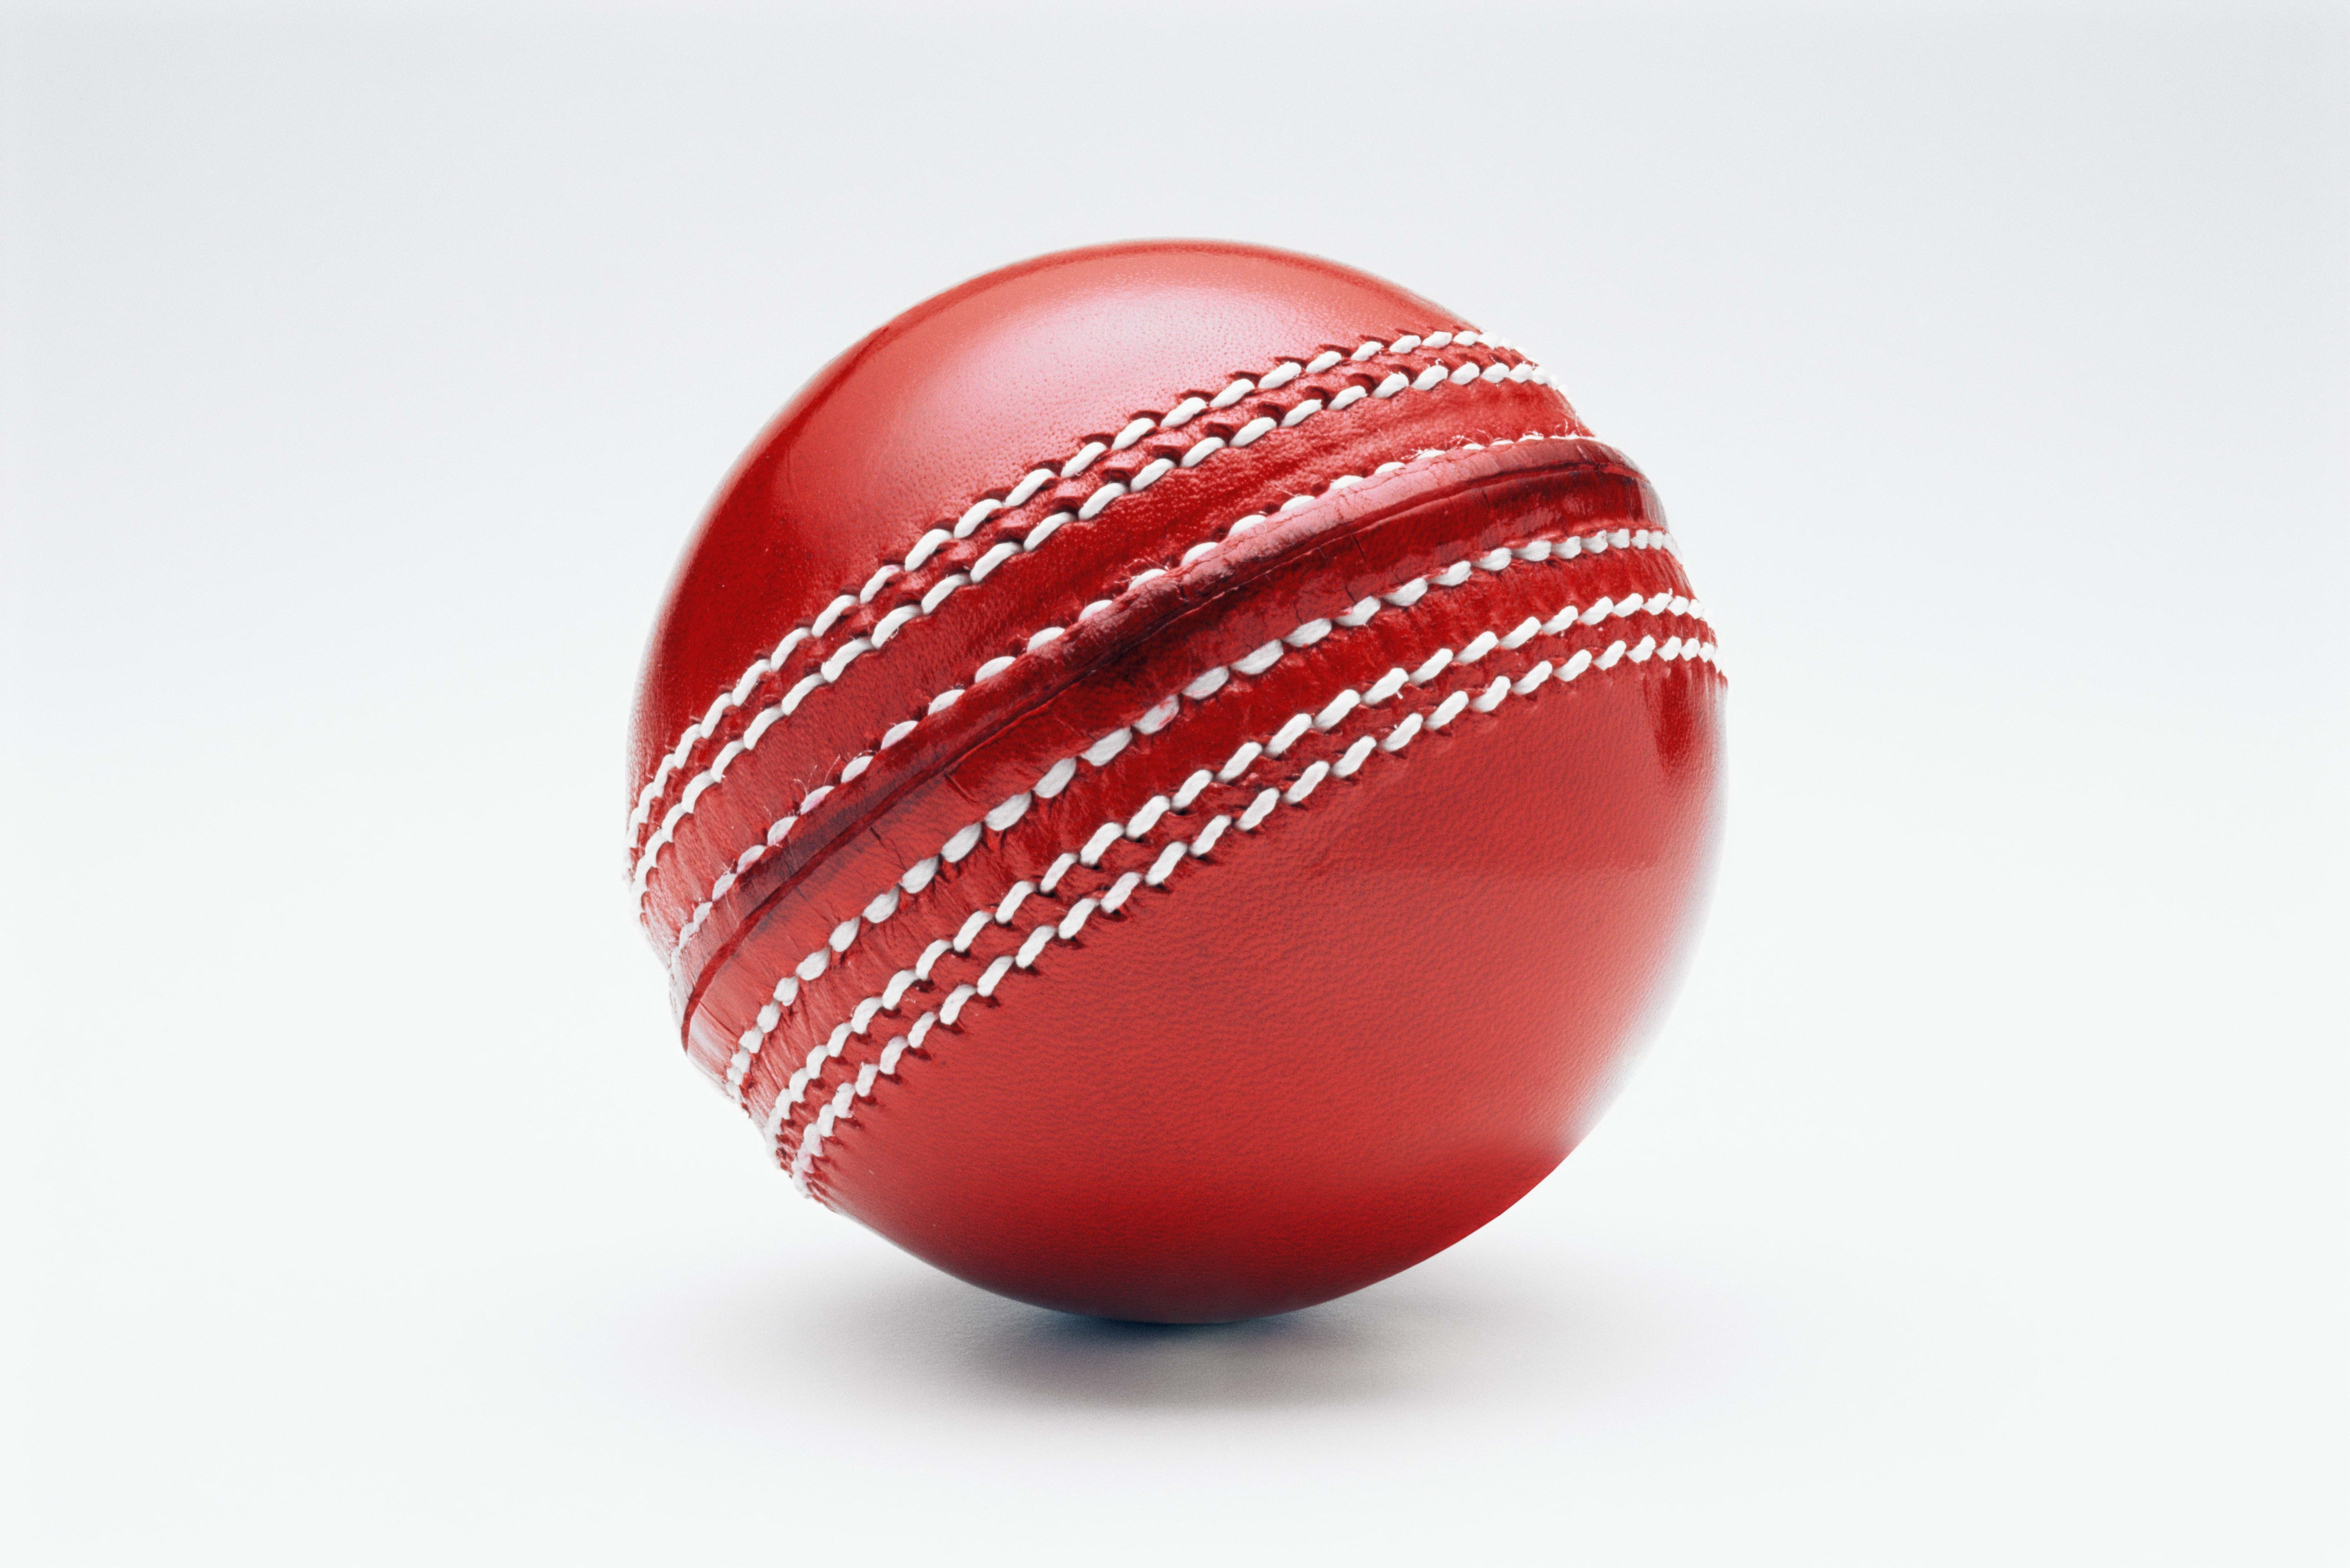 1920x1080 Ball White Background Cricket 1080p Laptop Full Hd Wallpaper Hd Sports 4k Wallpapers Images Photos And Background